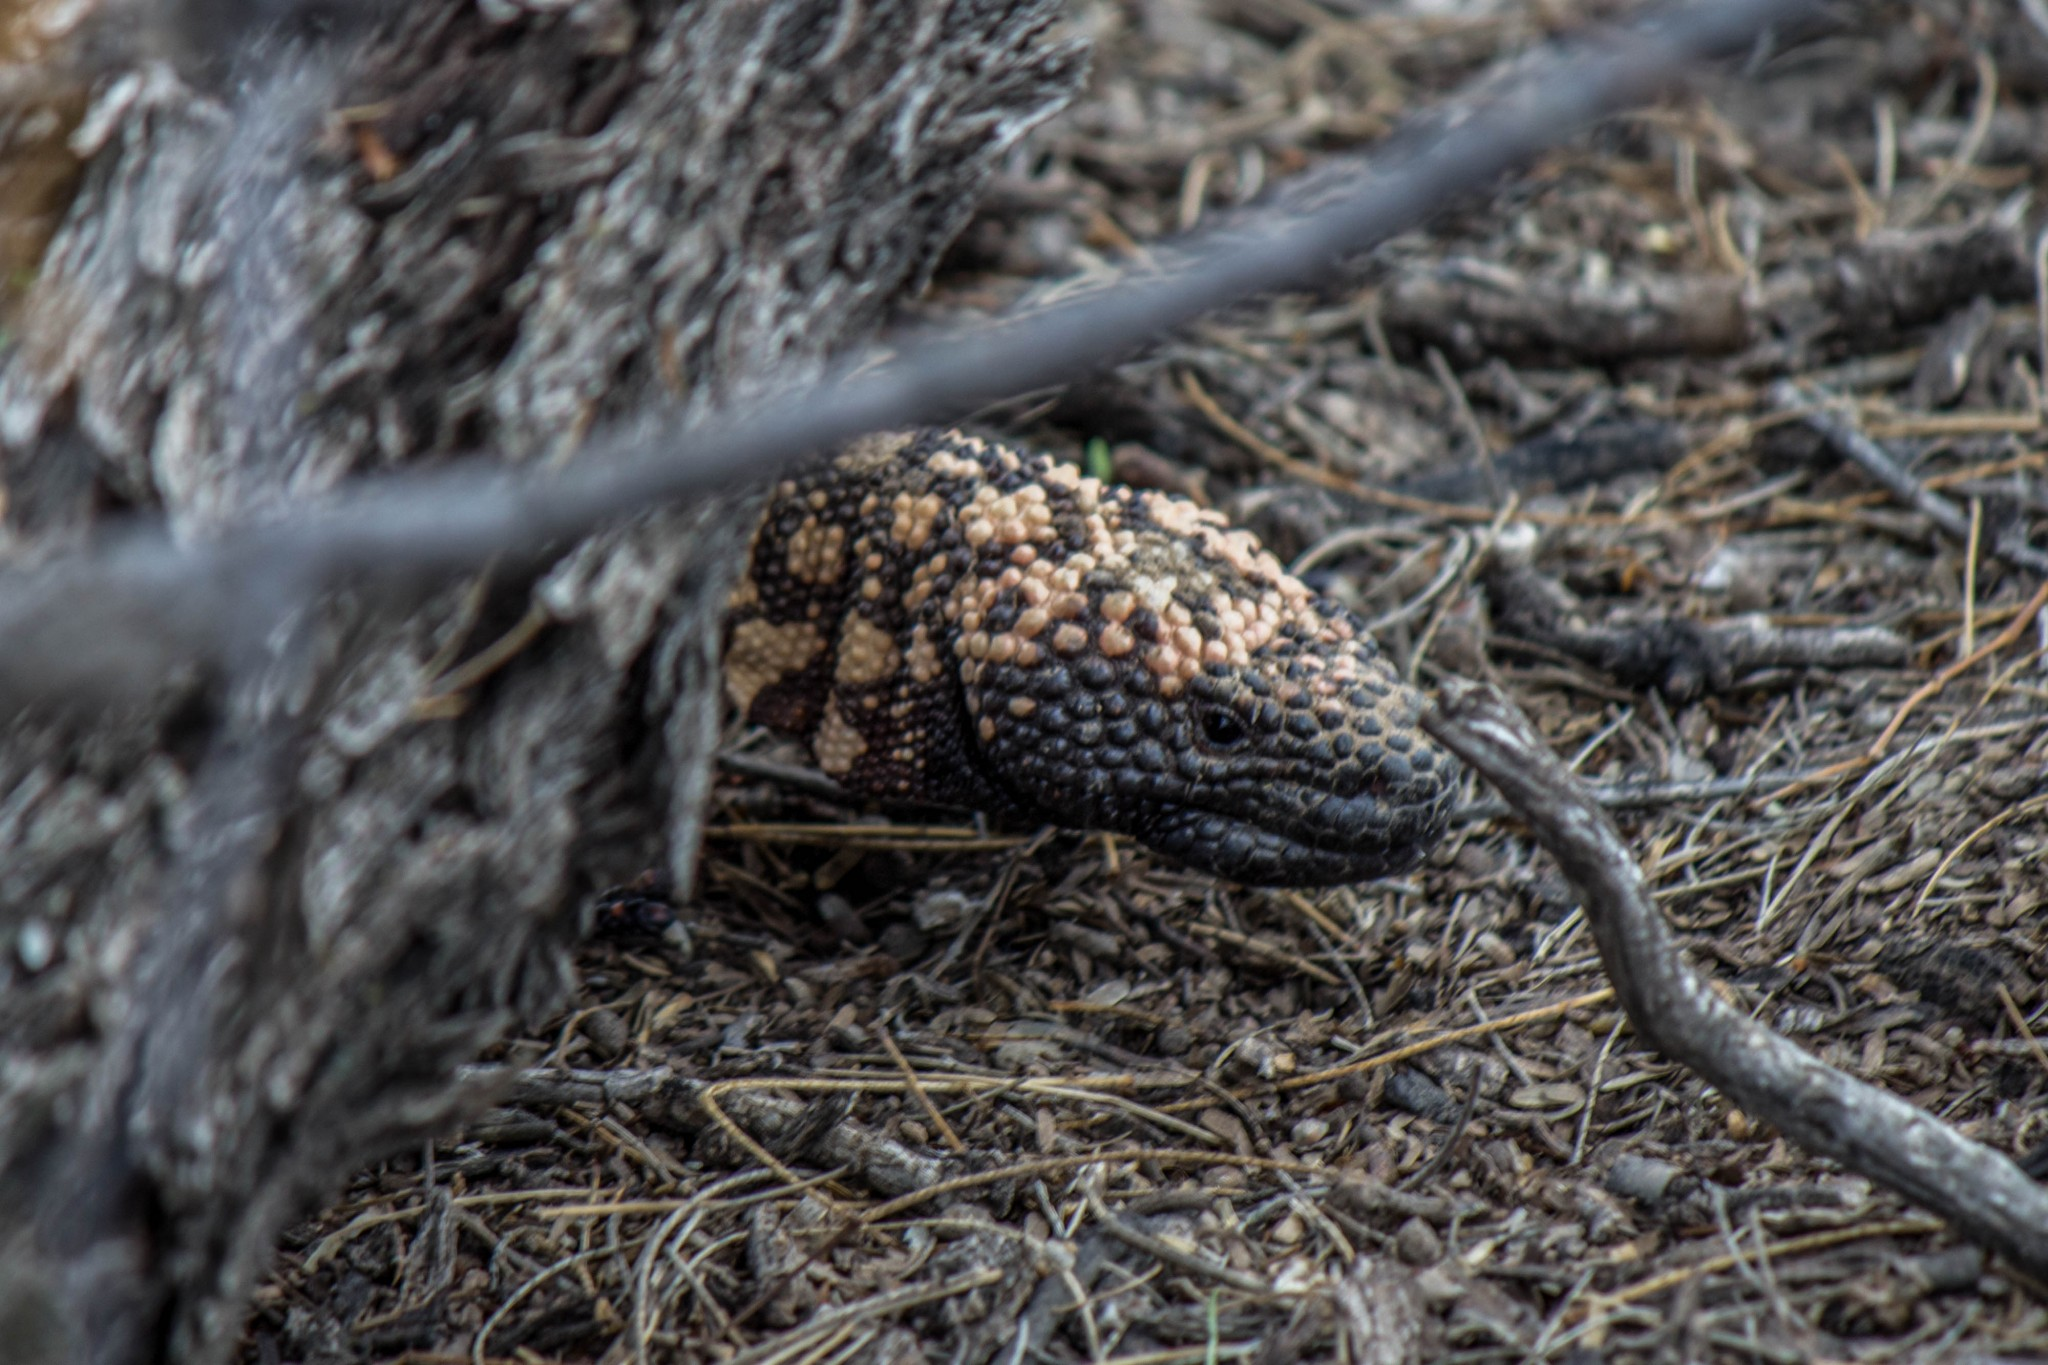 Gila Monster2